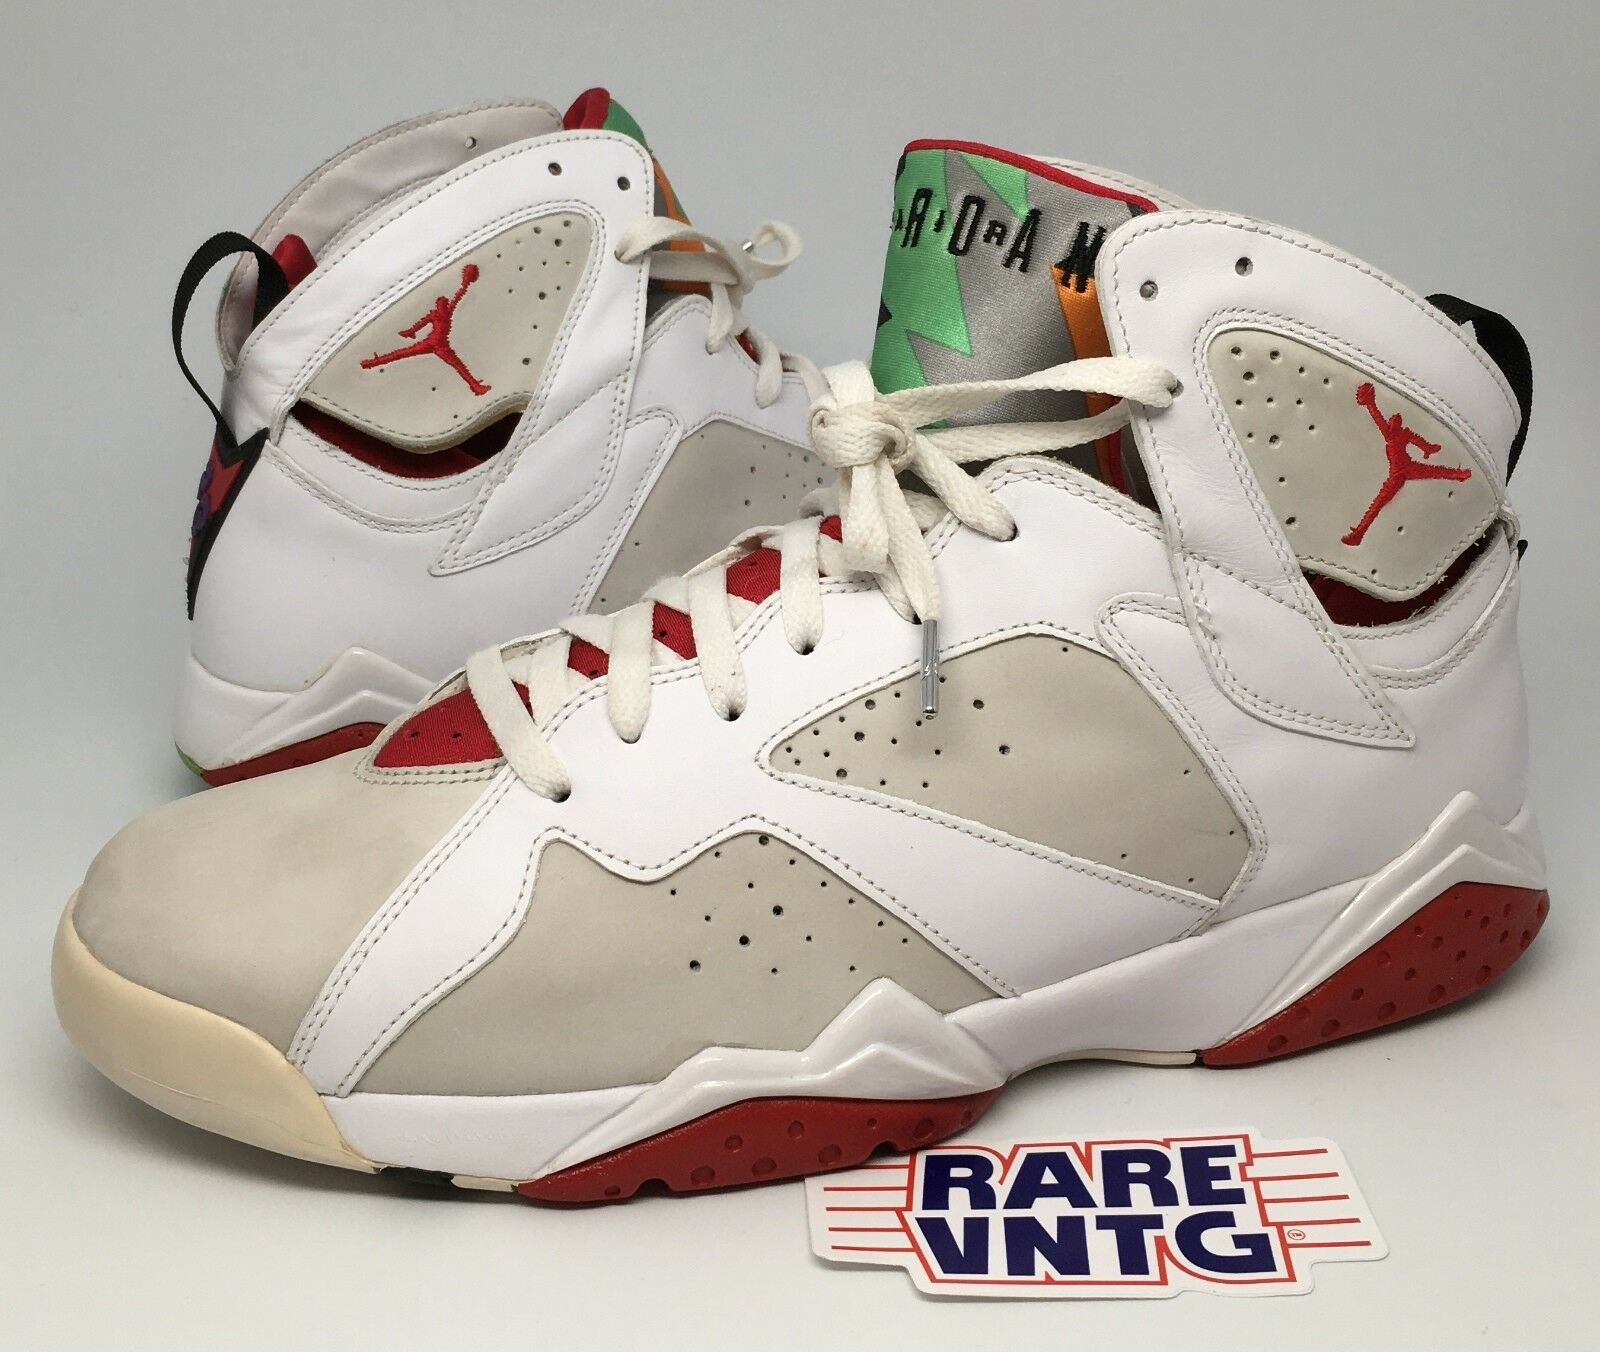 the best attitude ec9d3 a9d38 2008 Nike Air Jordan VII 7 Hare Hare Hare CDP Countdown Pack ...